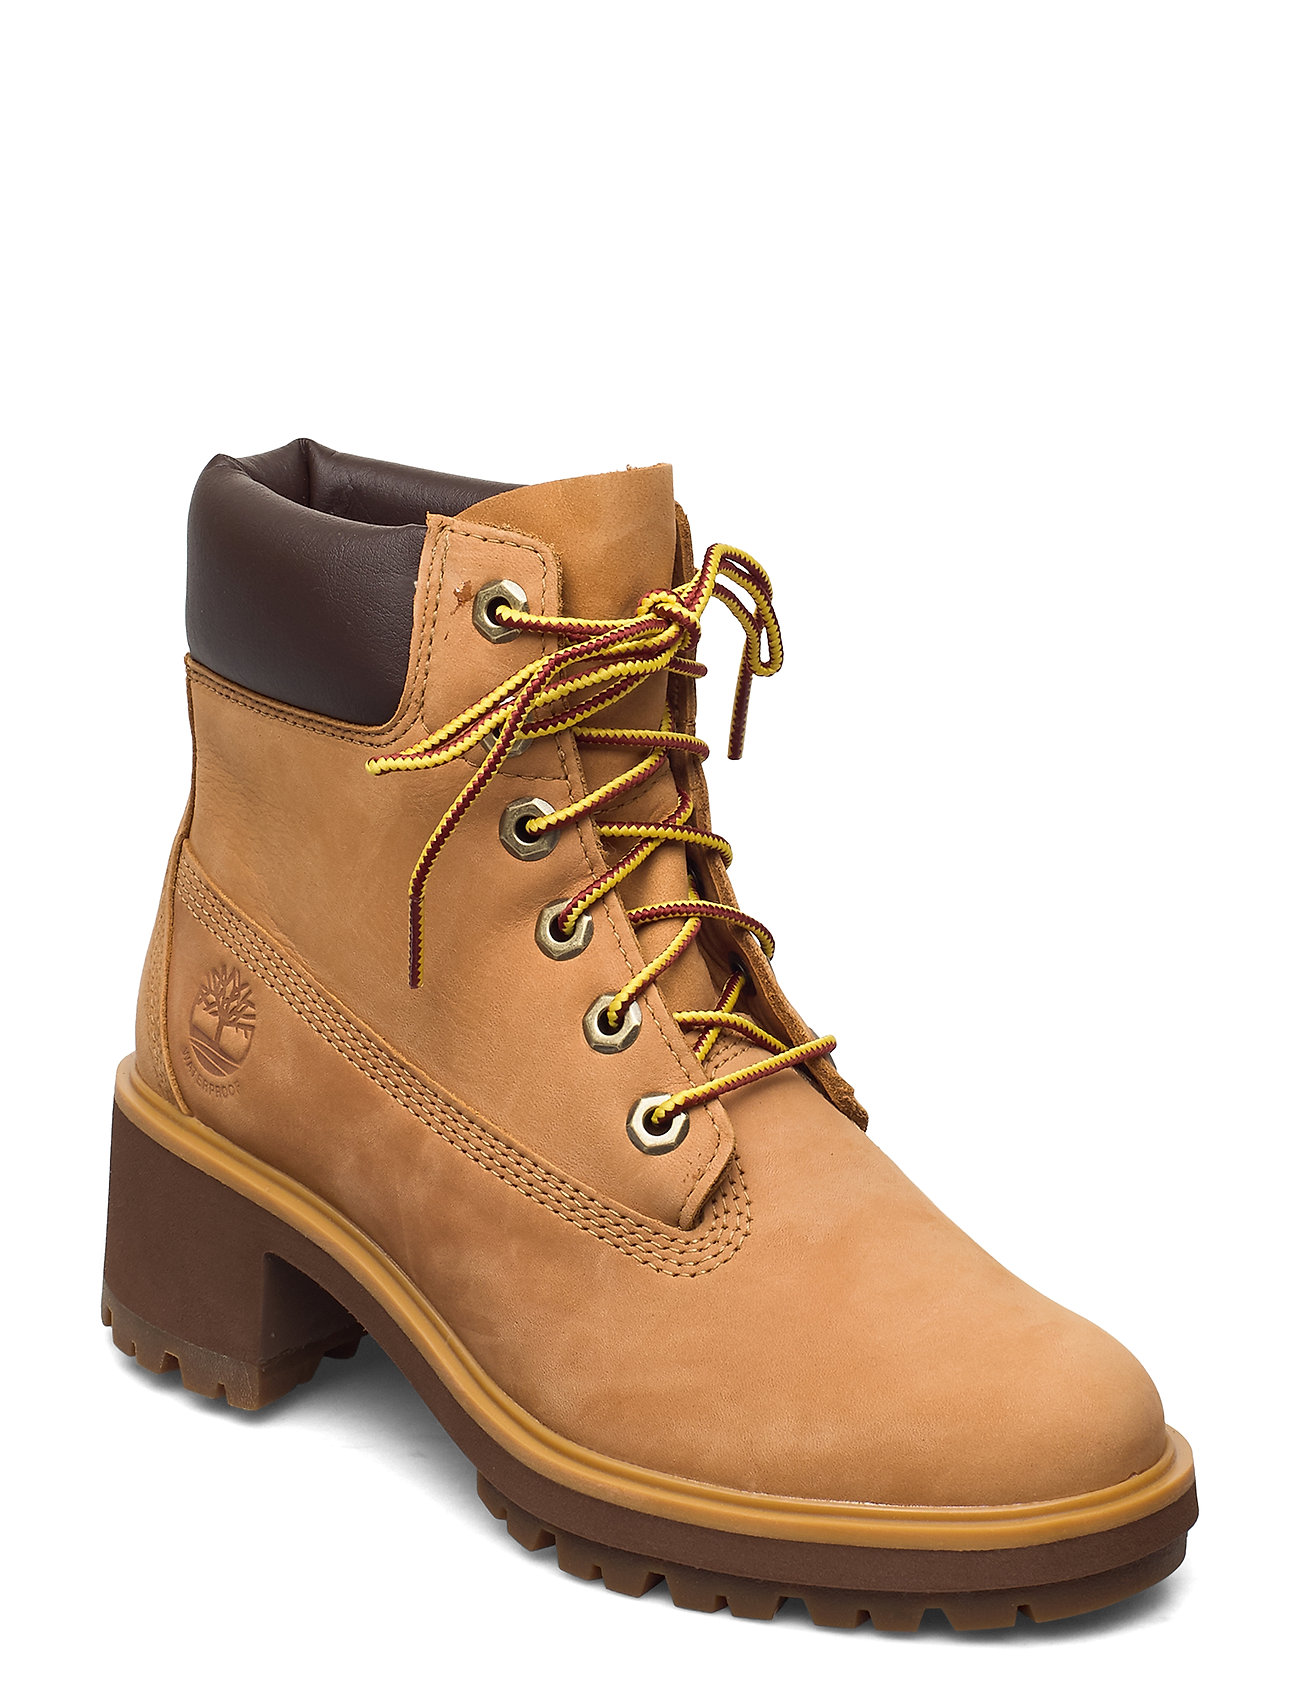 Image of Kinsley 6 Inch Waterproof Boot Shoes Boots Ankle Boots Ankle Boot - Heel Beige Timberland (3437231579)